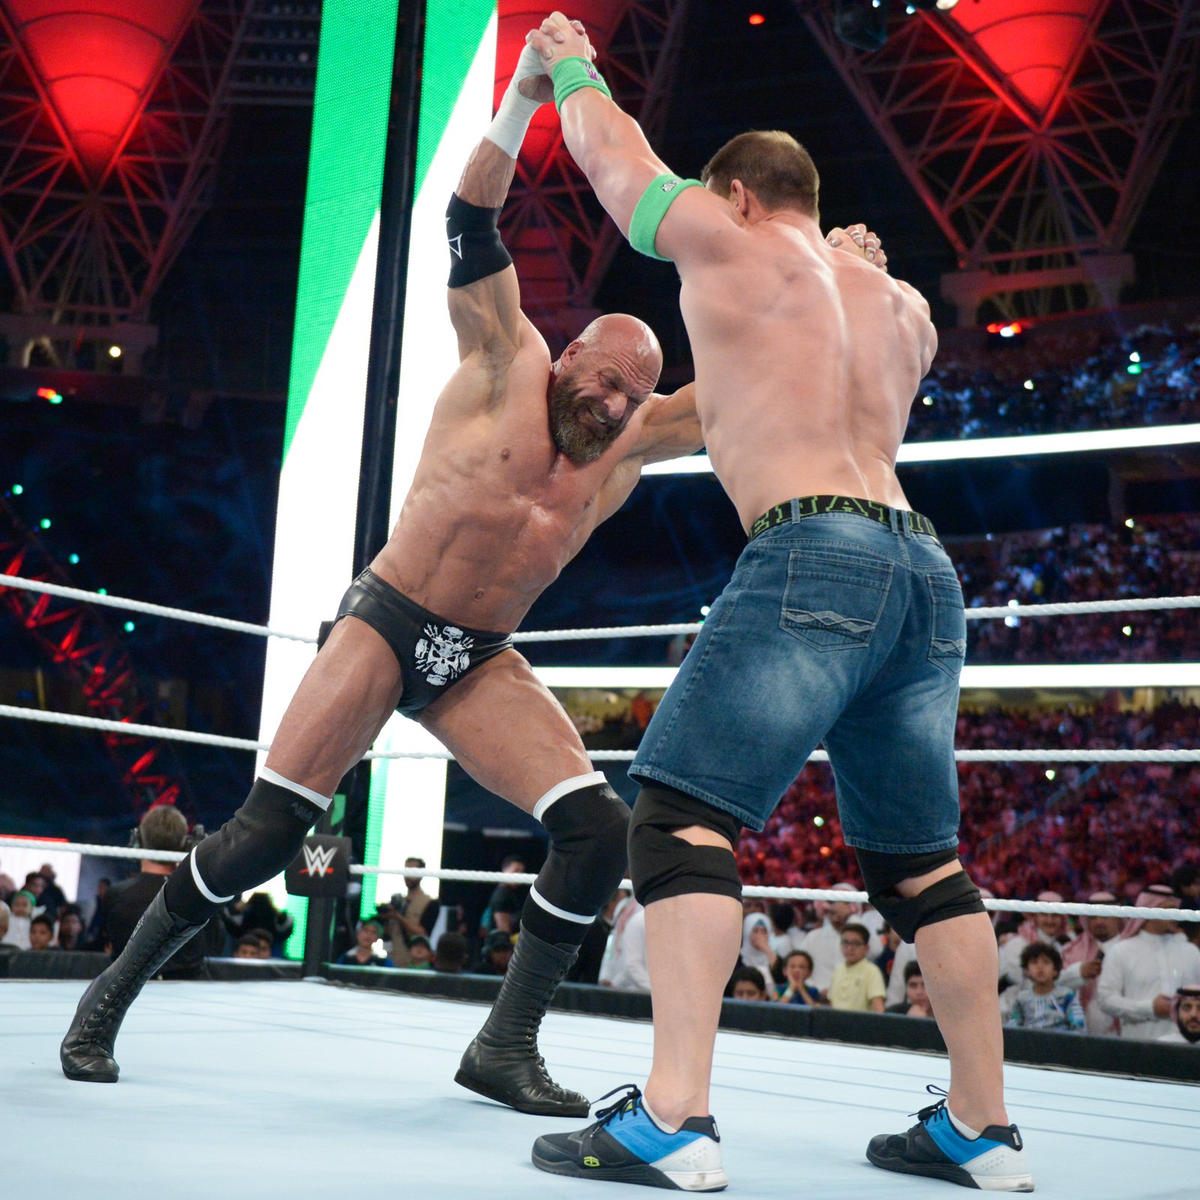 Cena and Triple H engage in a legendary test of strength.